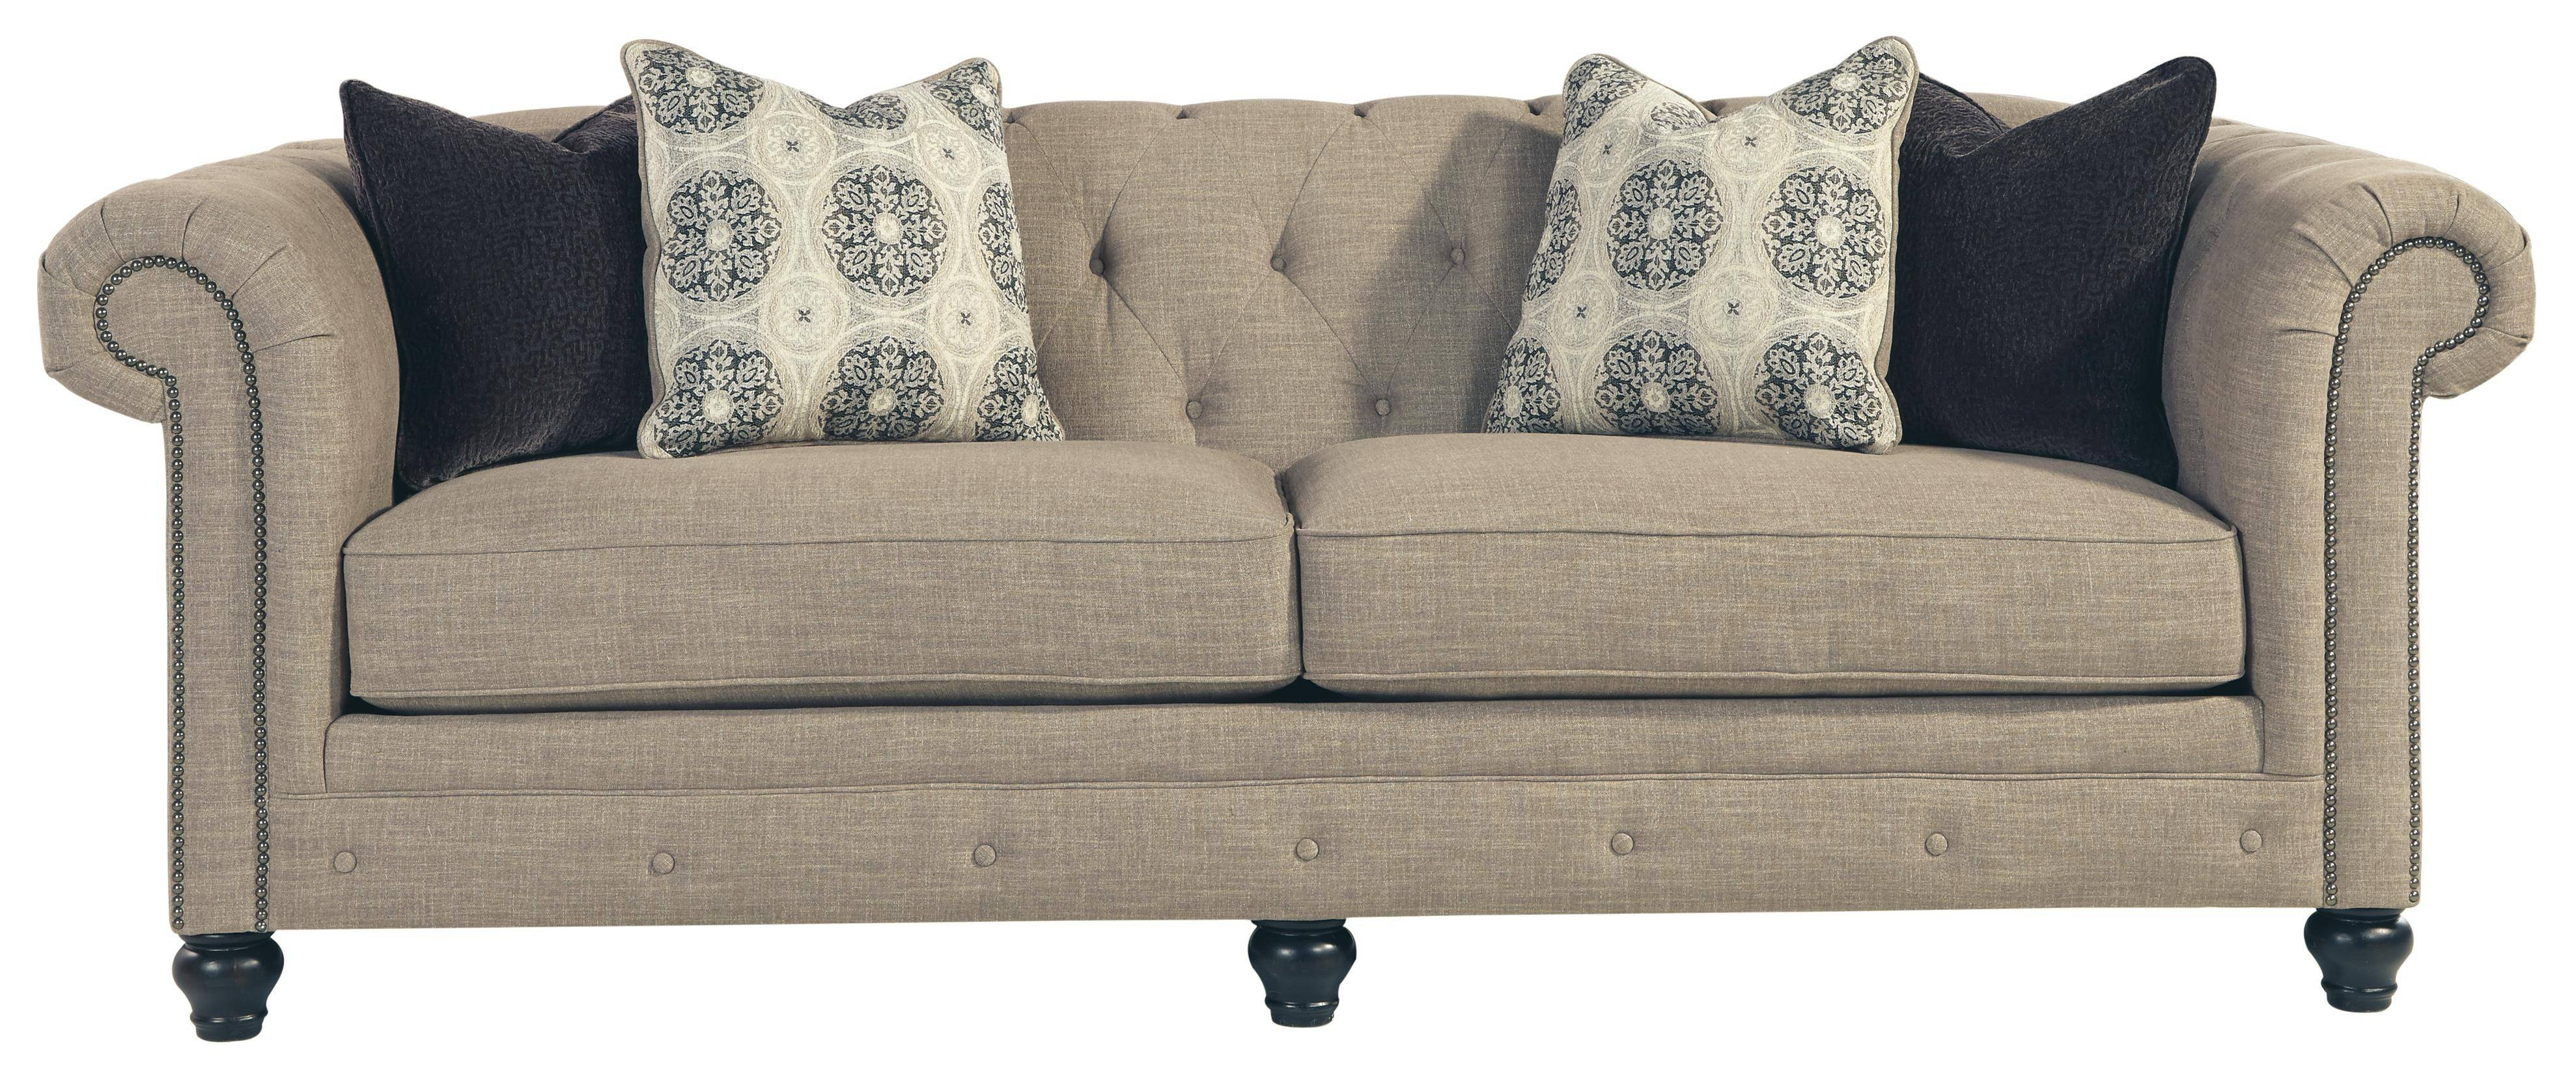 Benchcraft Azlyn Transitional Chesterfield Sofa With Linen Blend With Ashley Tufted Sofa (View 8 of 30)